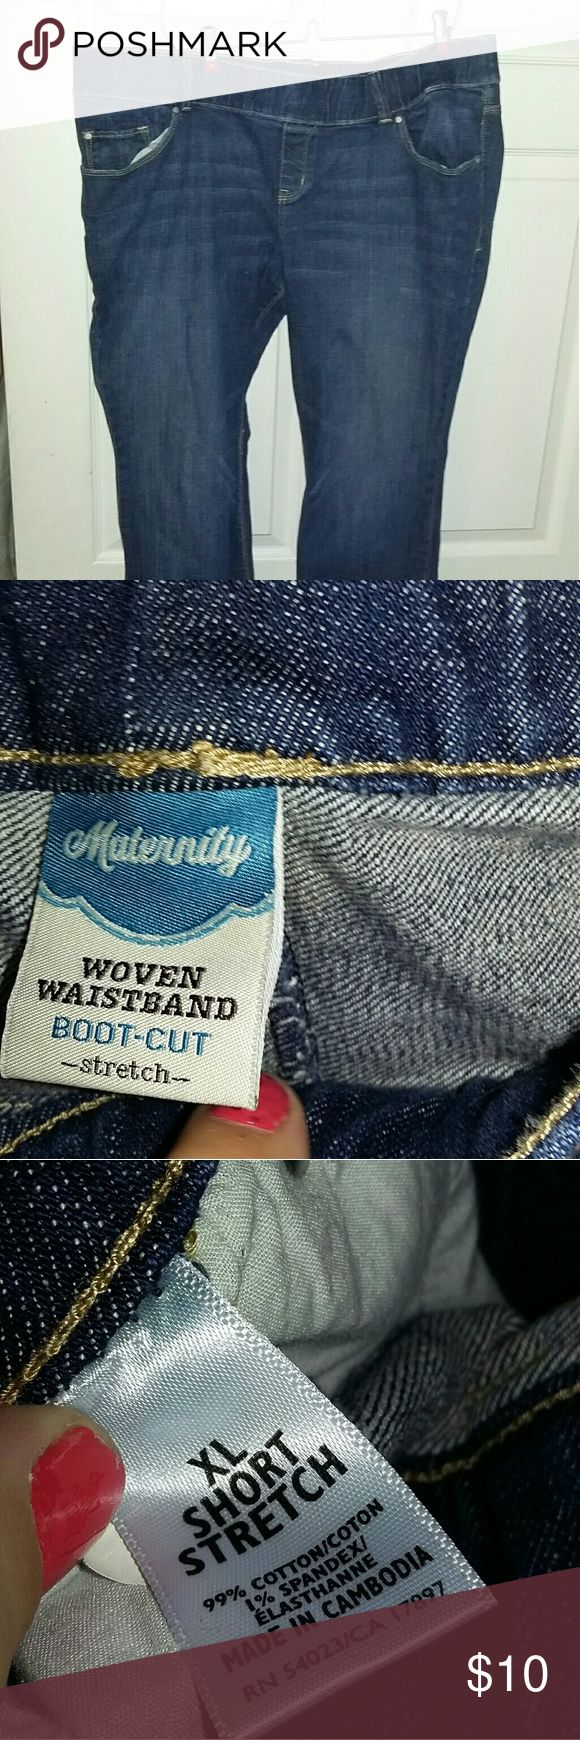 Old Navy maternity Jeans XL short Like new pair of old Navy maternity Jeans size XL short. They have stretch to them. Old Navy Jeans Flare & Wide Leg